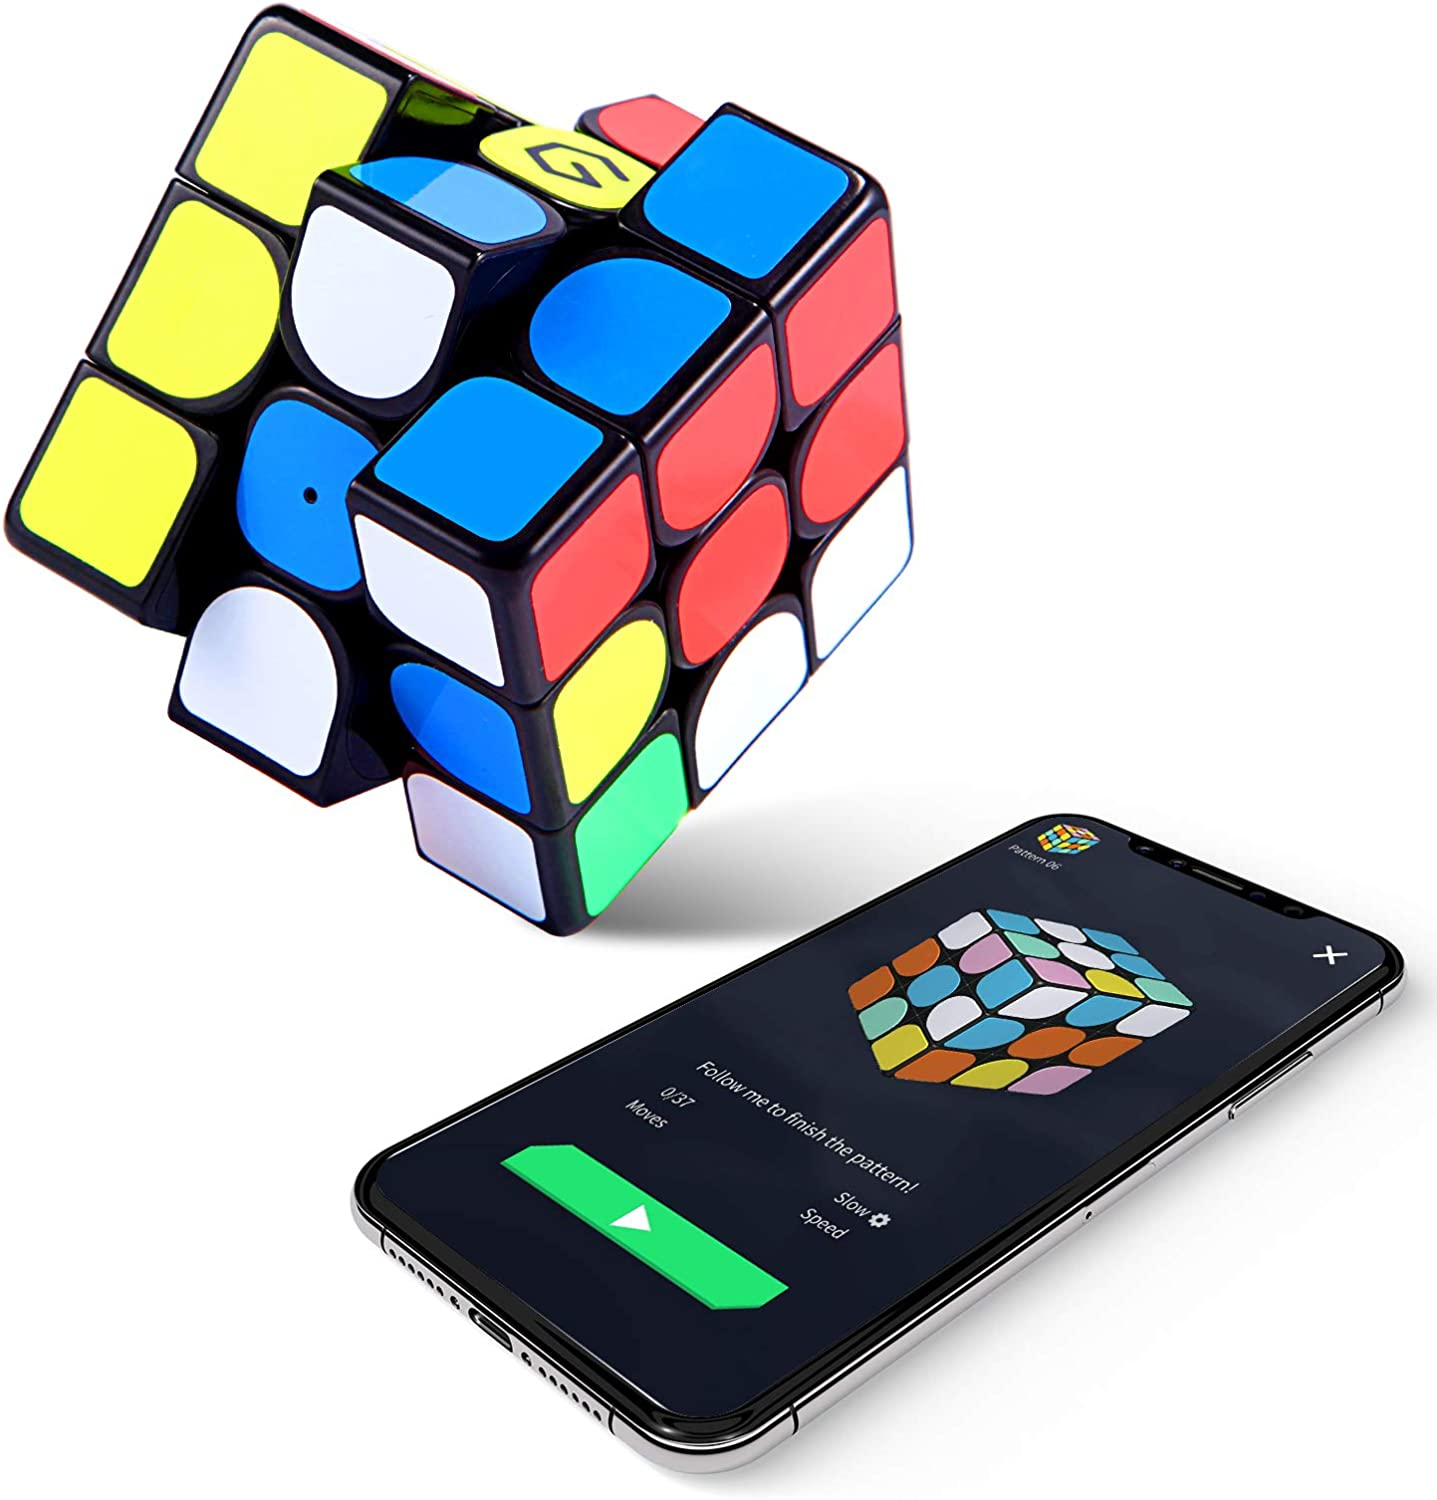 AI Intelligent Speed Cube App Bluetooth Control Professional Magic Cube Magic Magnetic Electronic Cube Puzzle Toys Suitable for All Ages and Capabilities